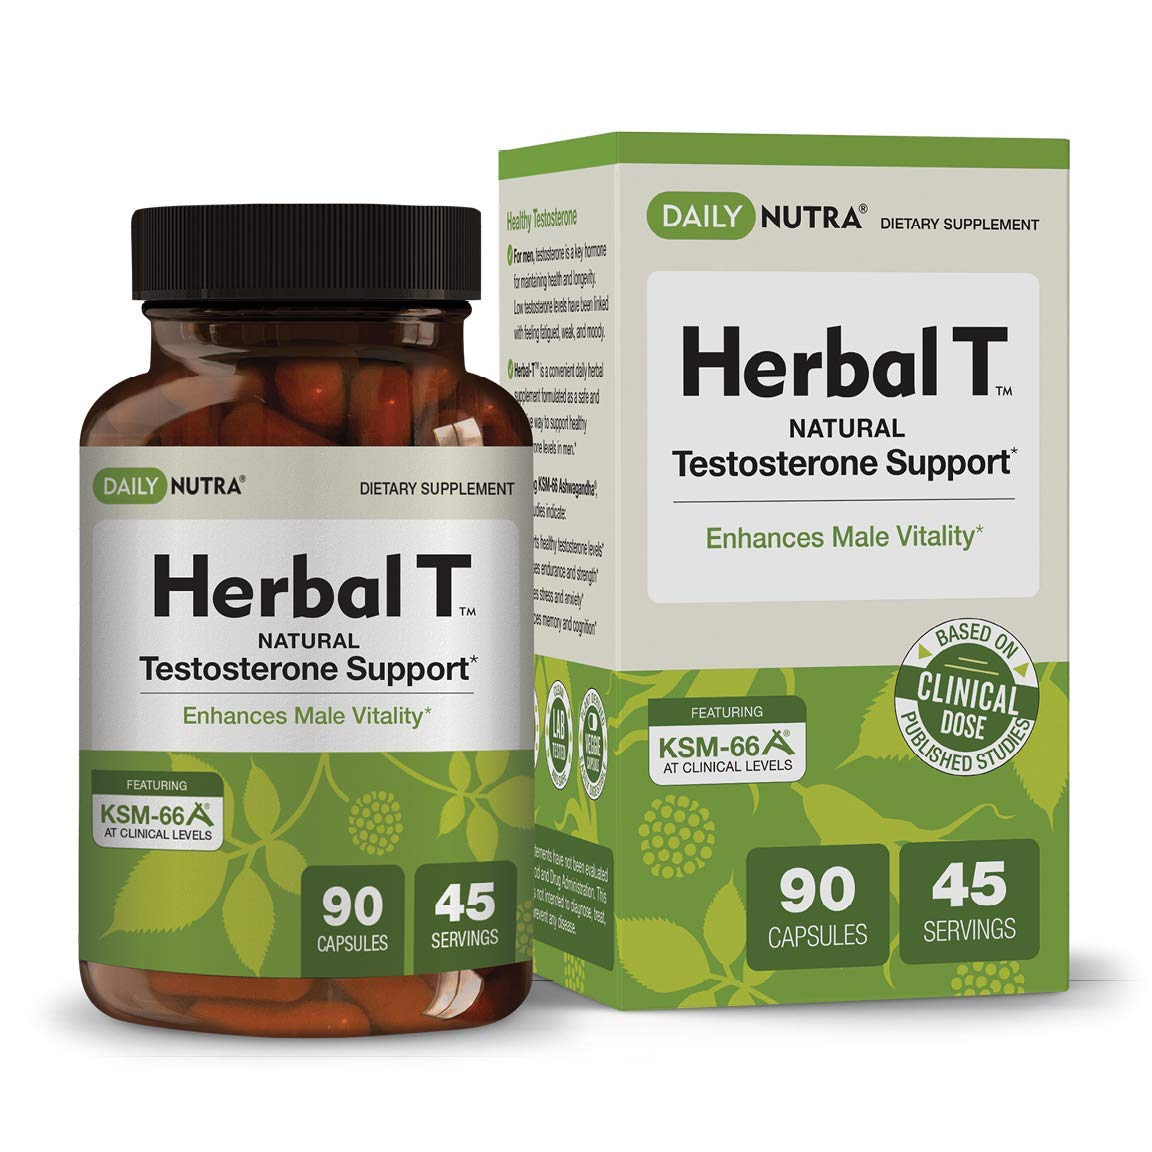 Herbal T Natural Testosterone Booster